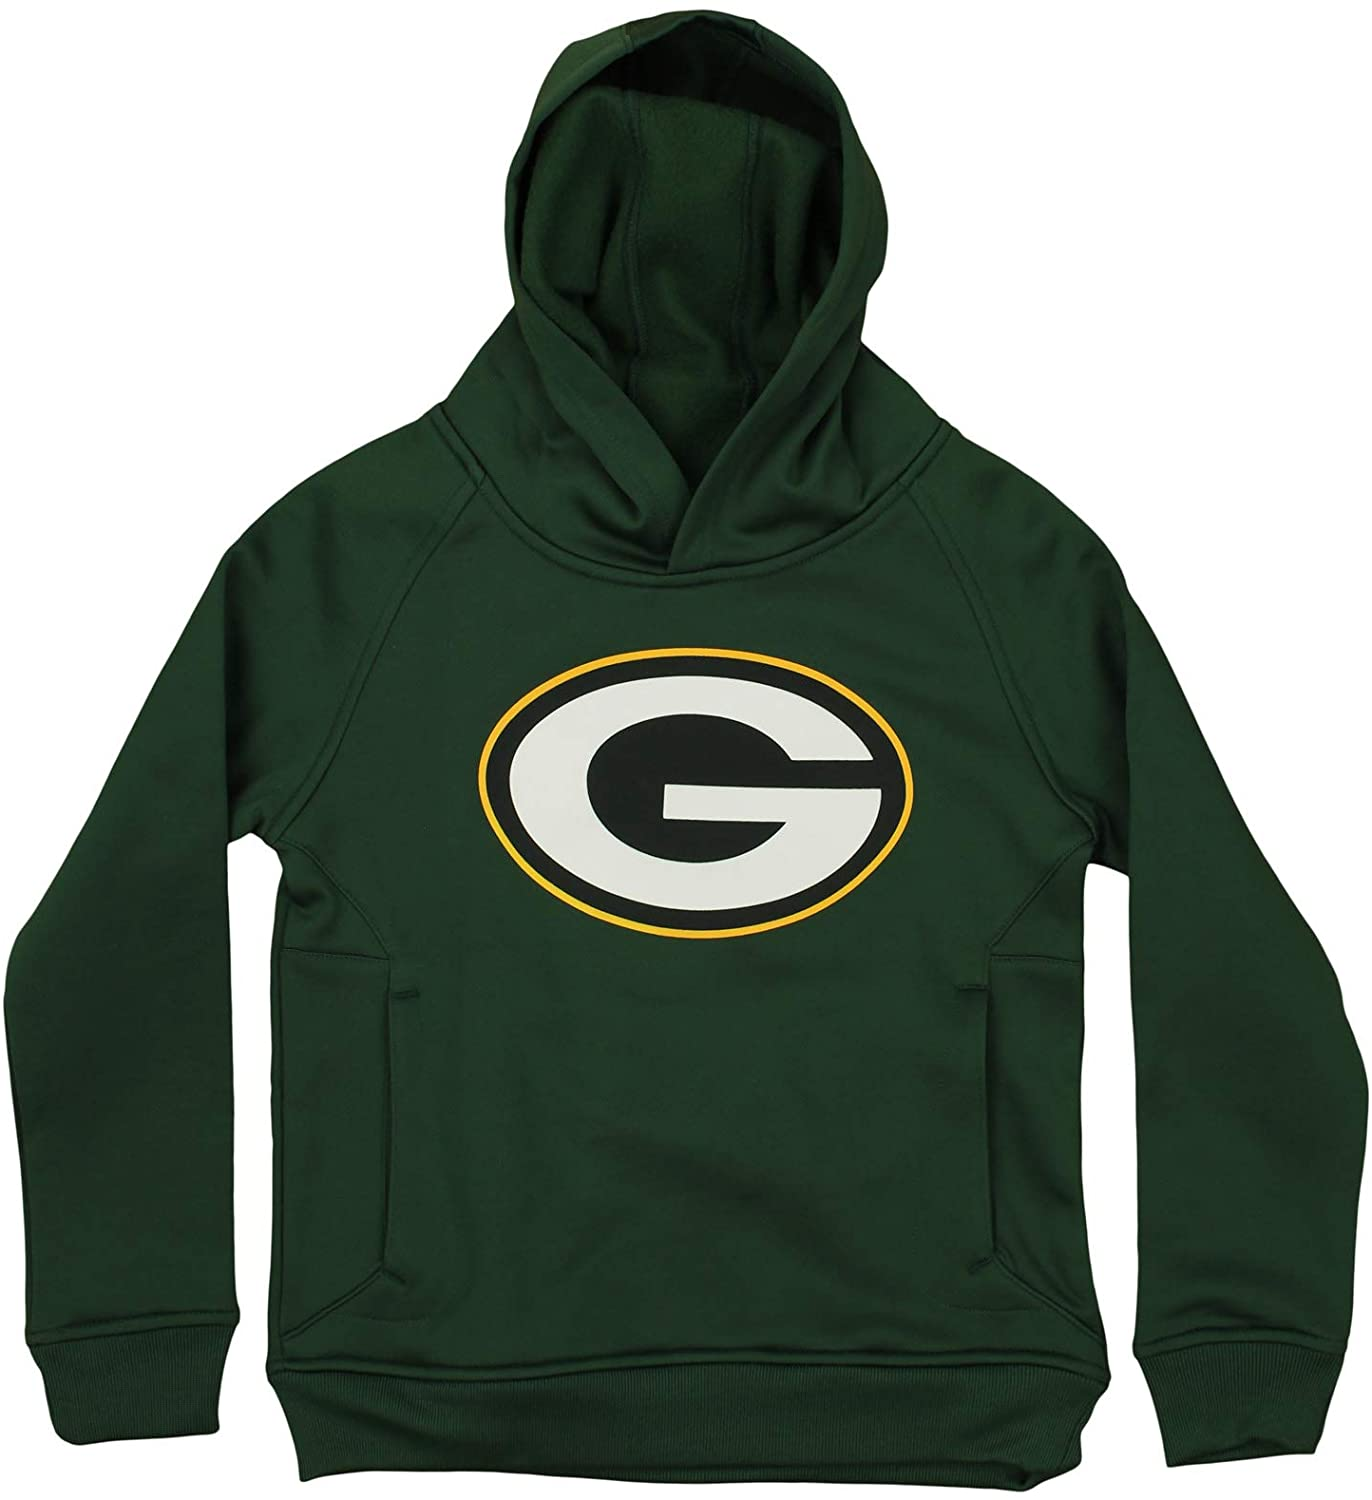 Outerstuff NFL Youth Boys (8-20) Green Bay Packers Performance Team Logo Hoodie